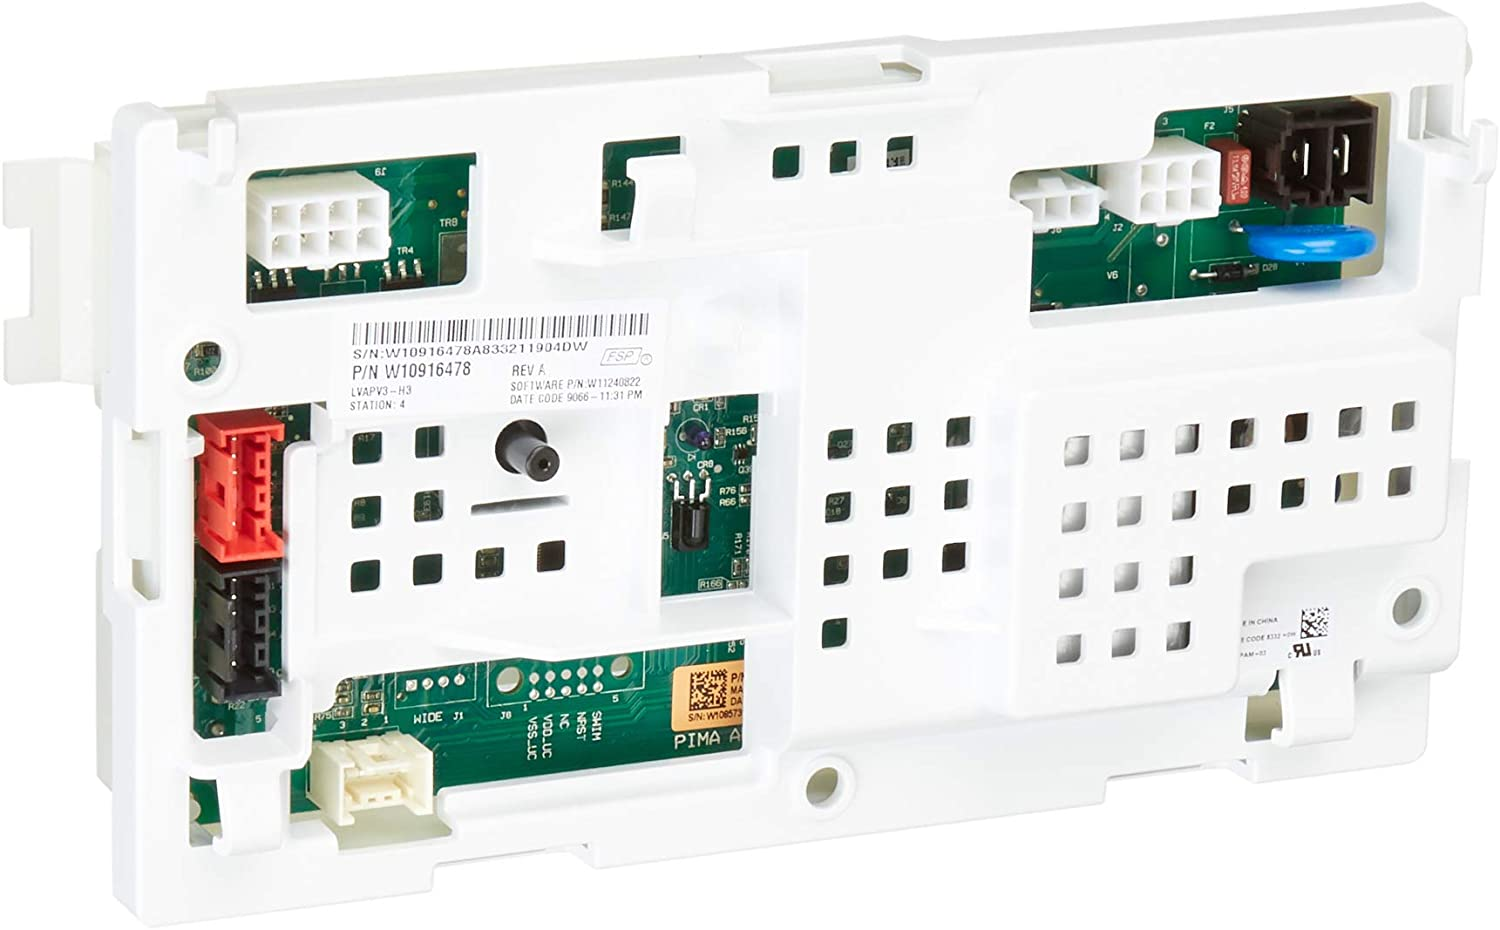 Whirlpool W11116590 Washer Electronic Control Board Original Equipment (OEM) Part, White